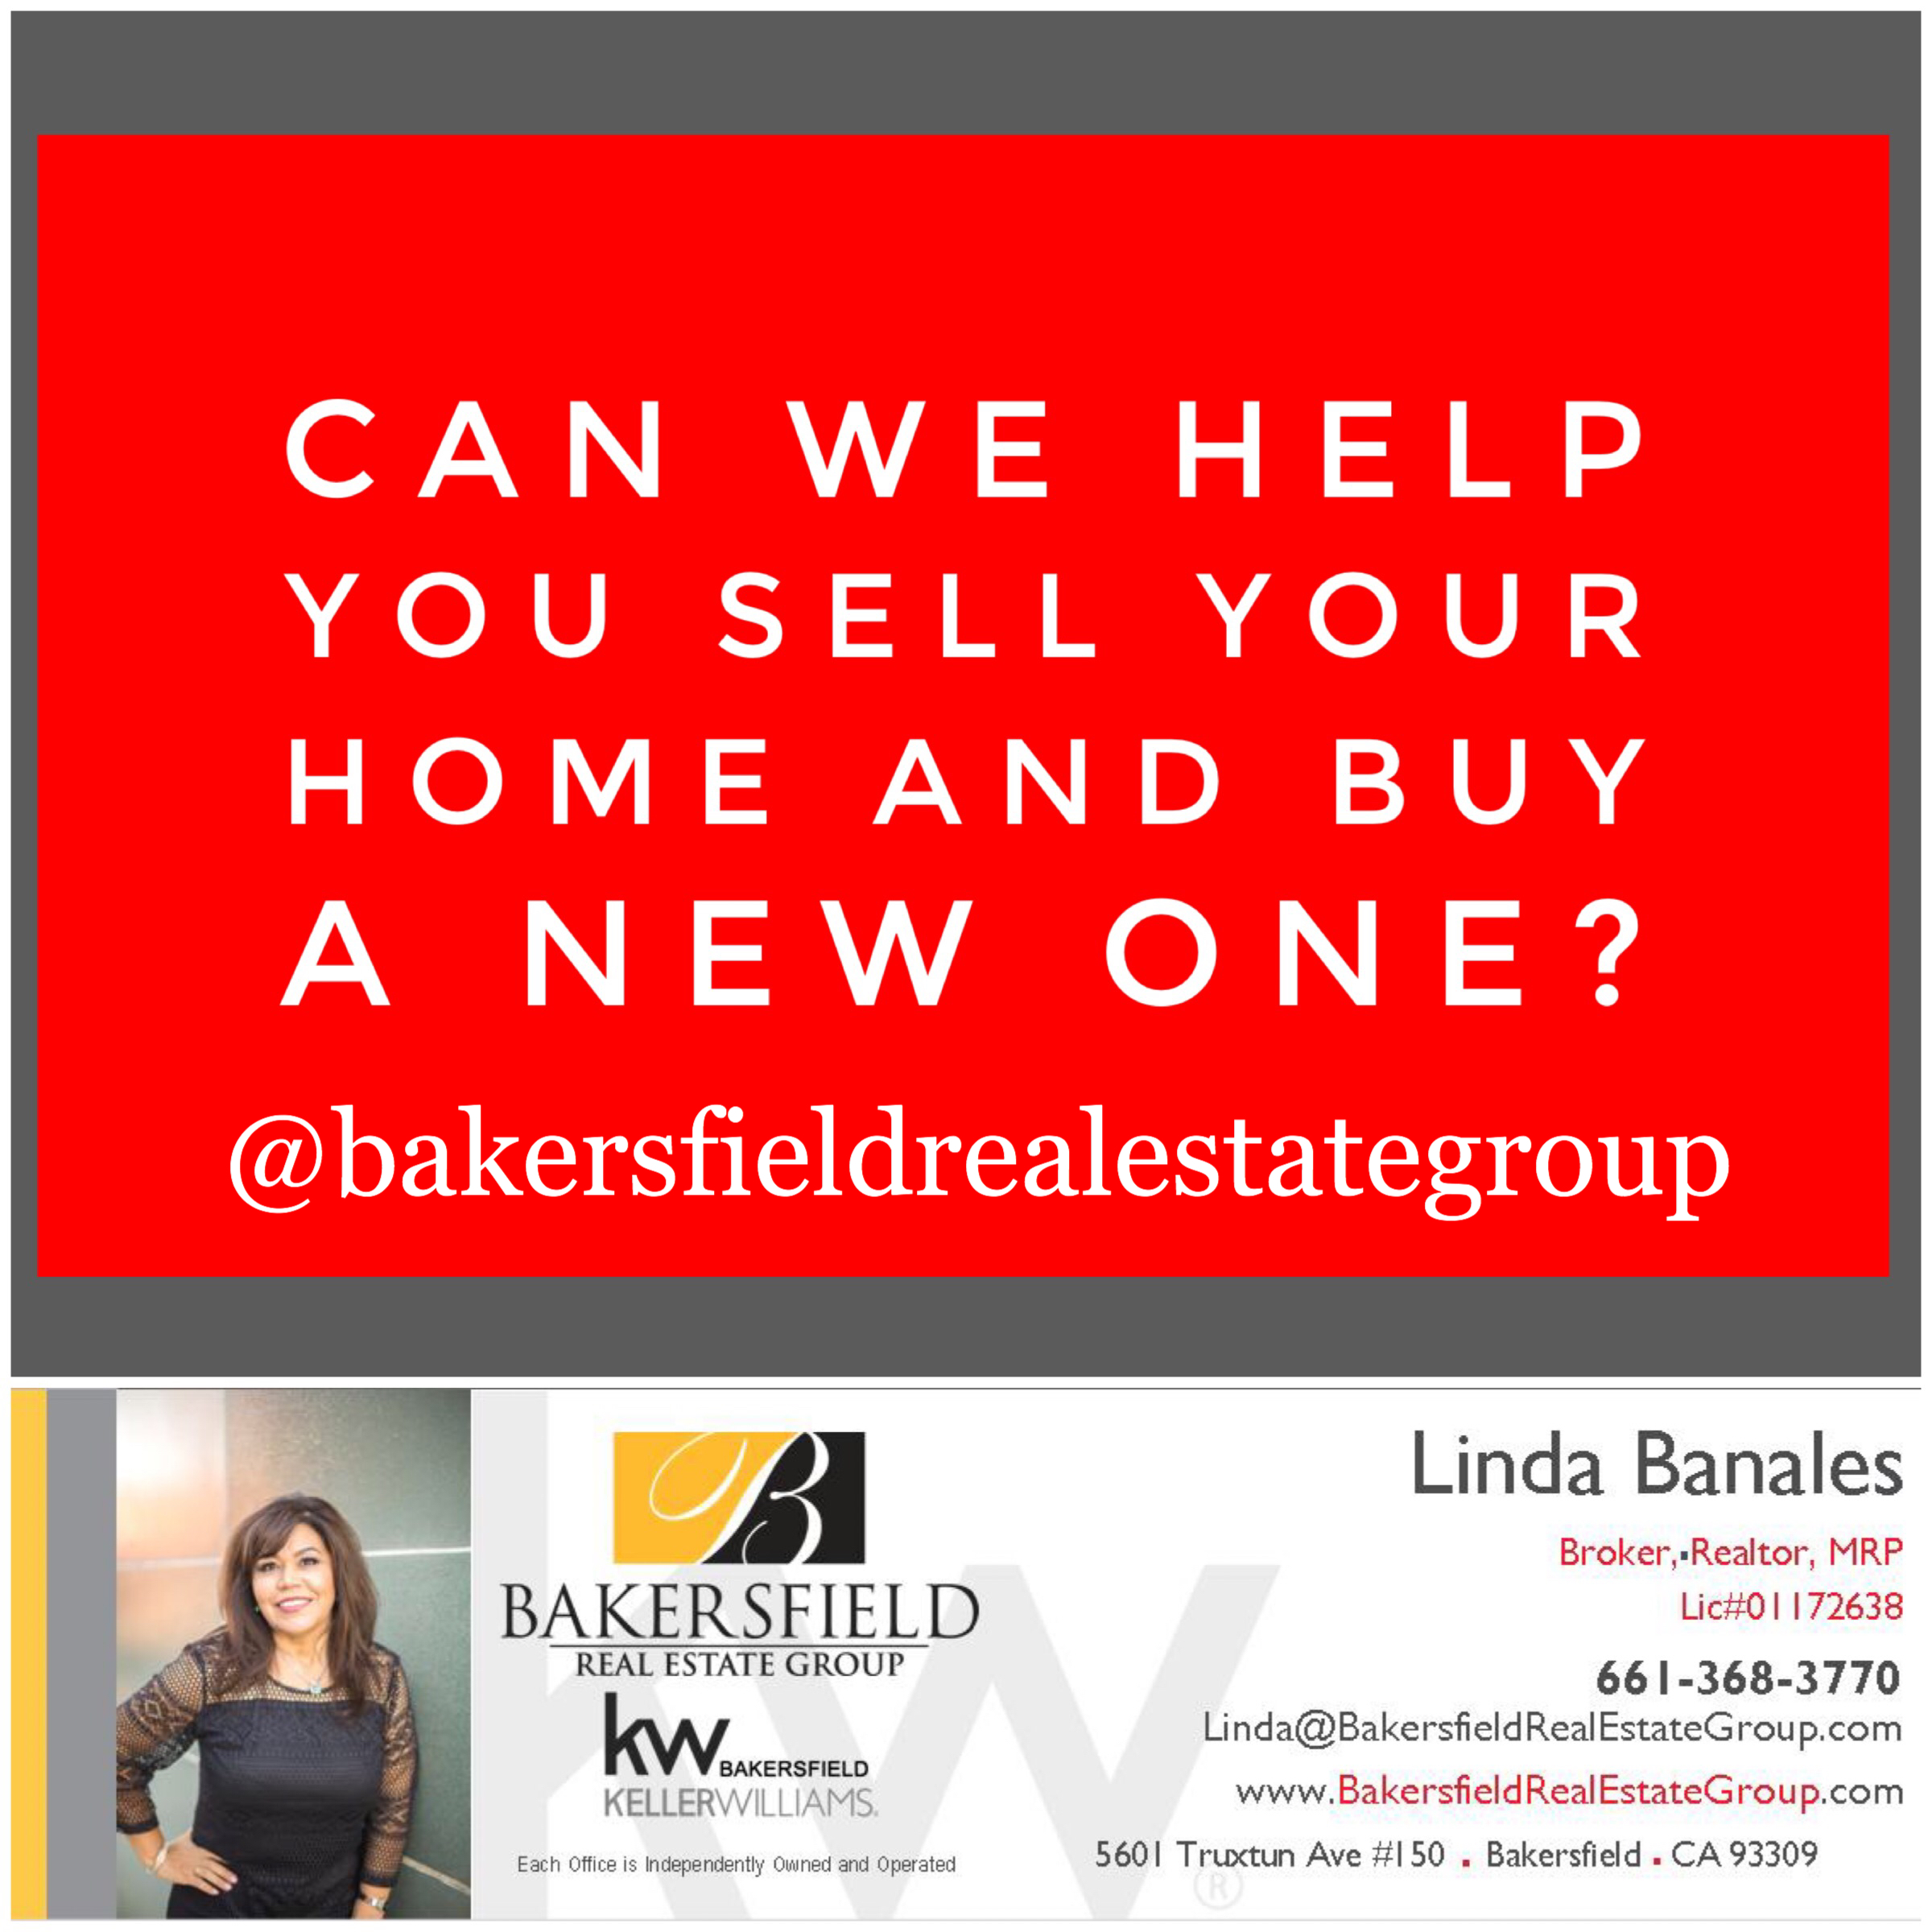 Top Realtors in Bakersfield